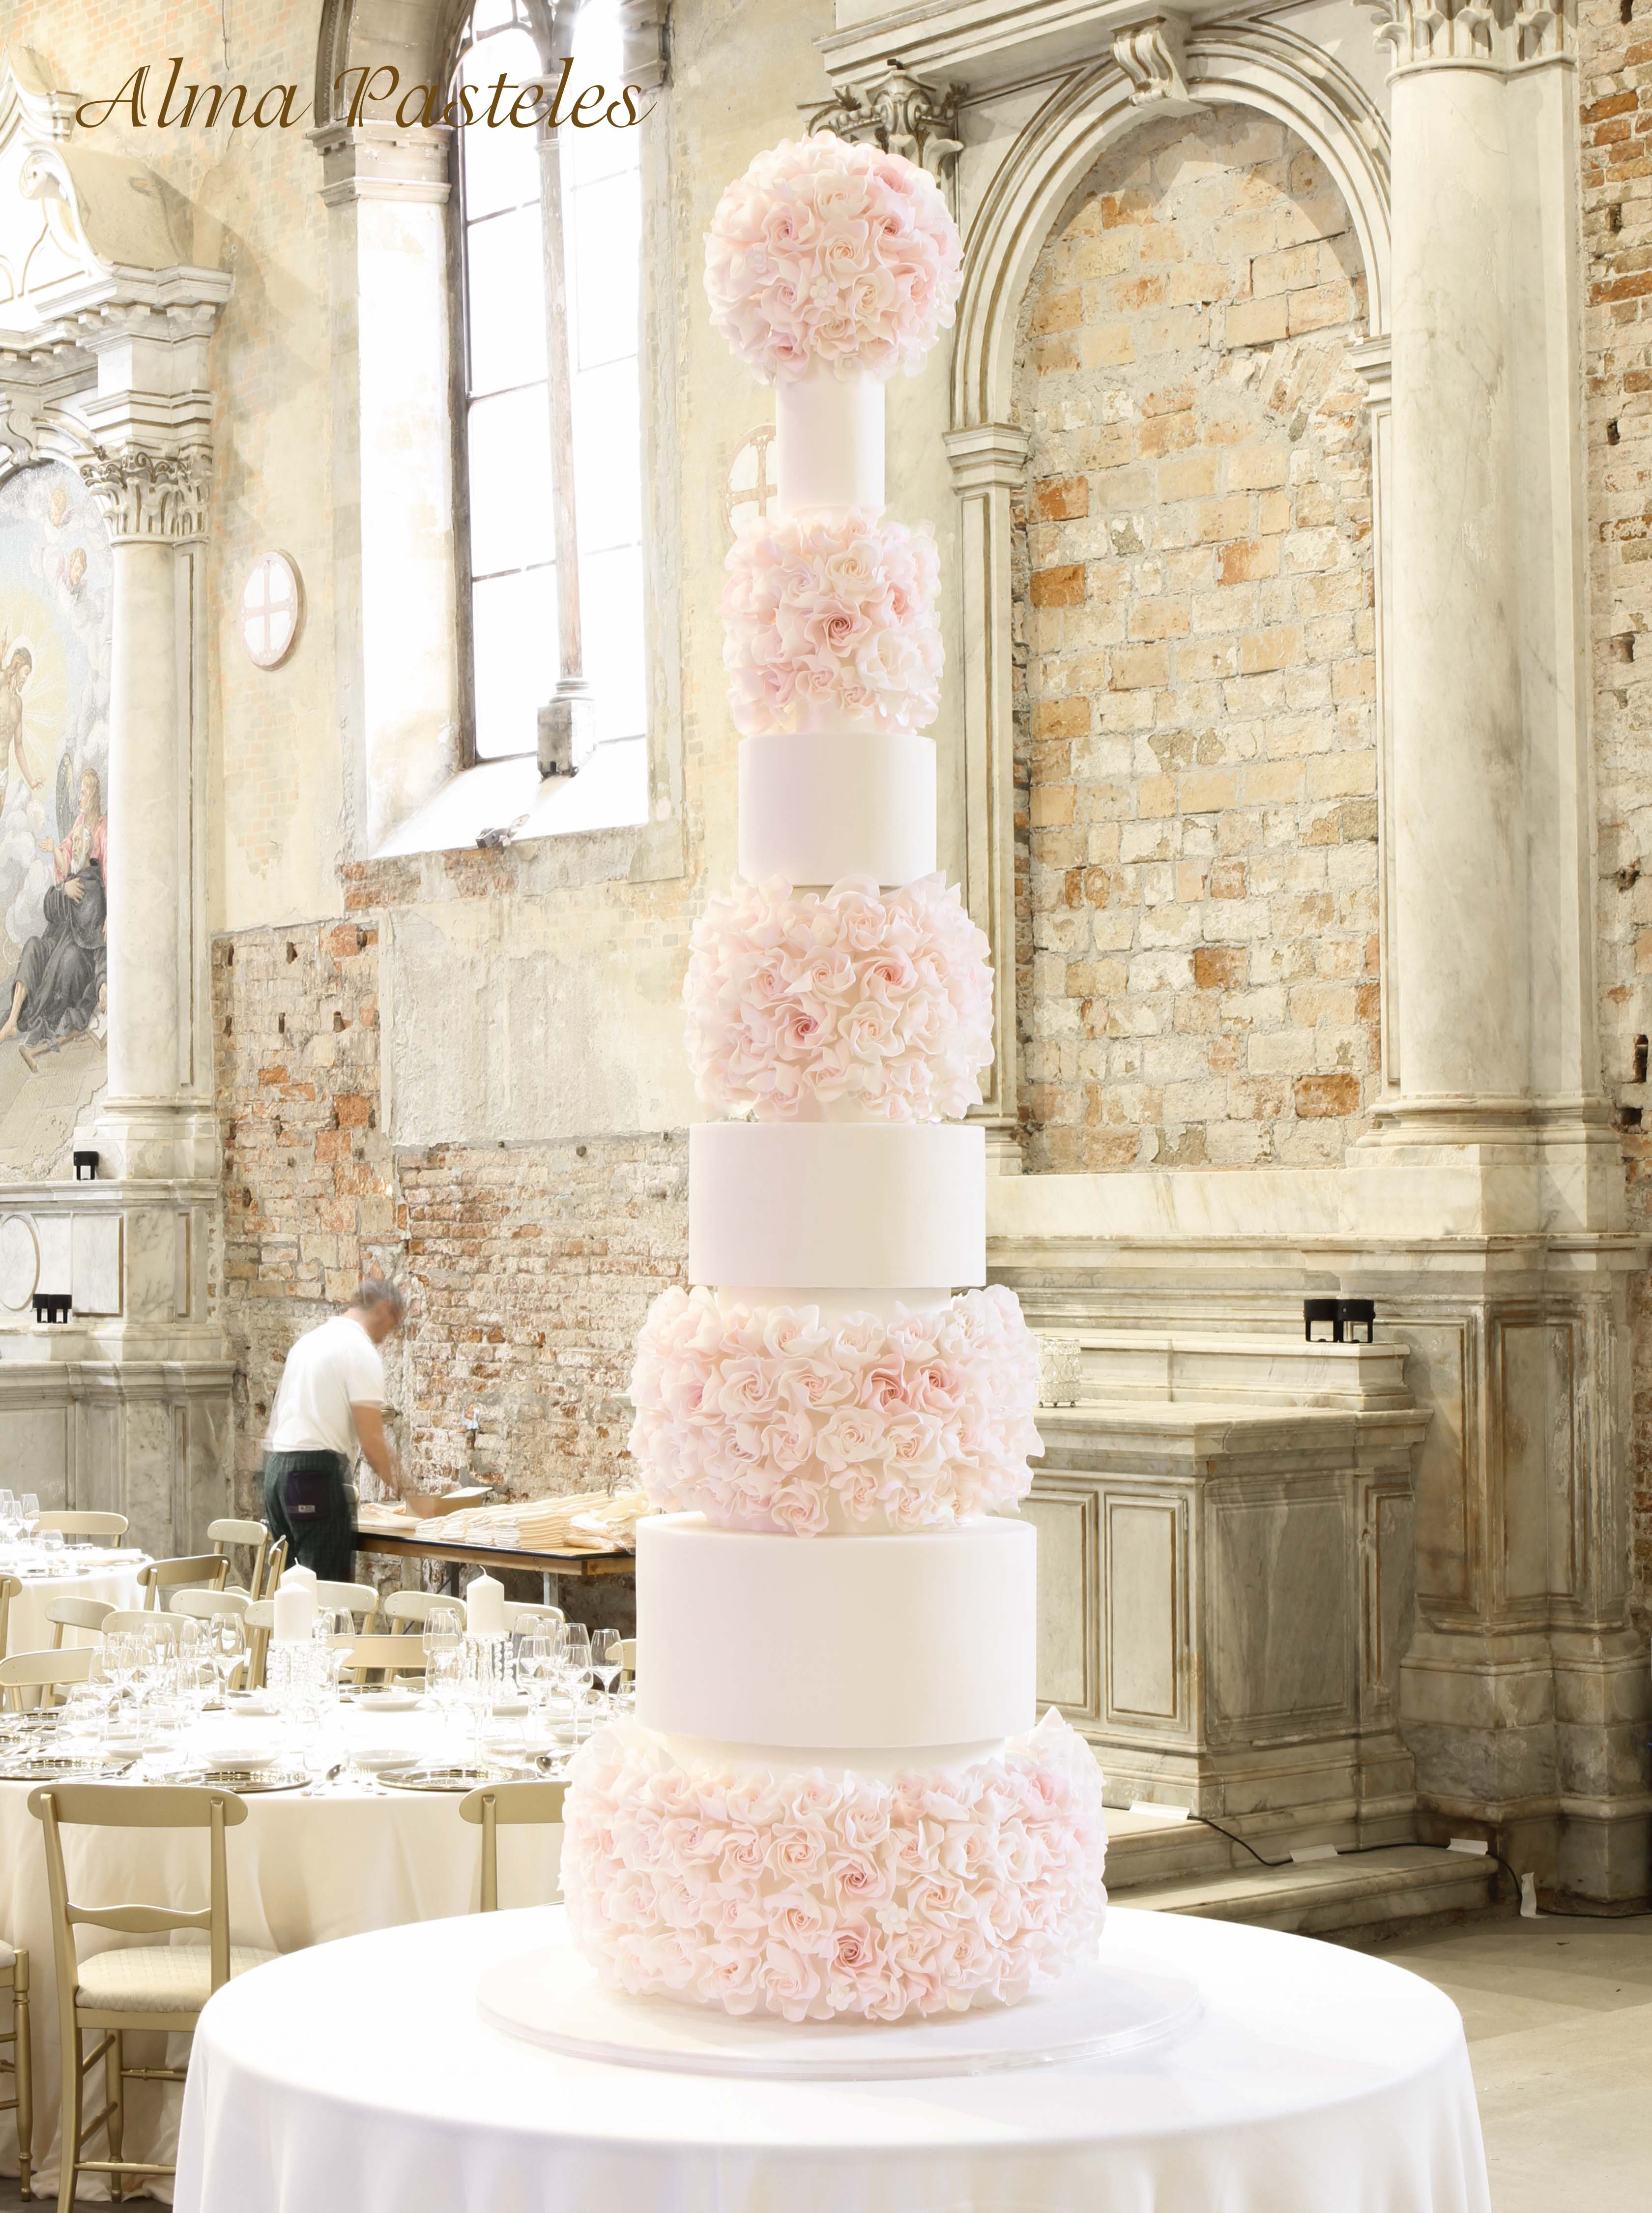 8 tier wedding cake with pink sugar flowers